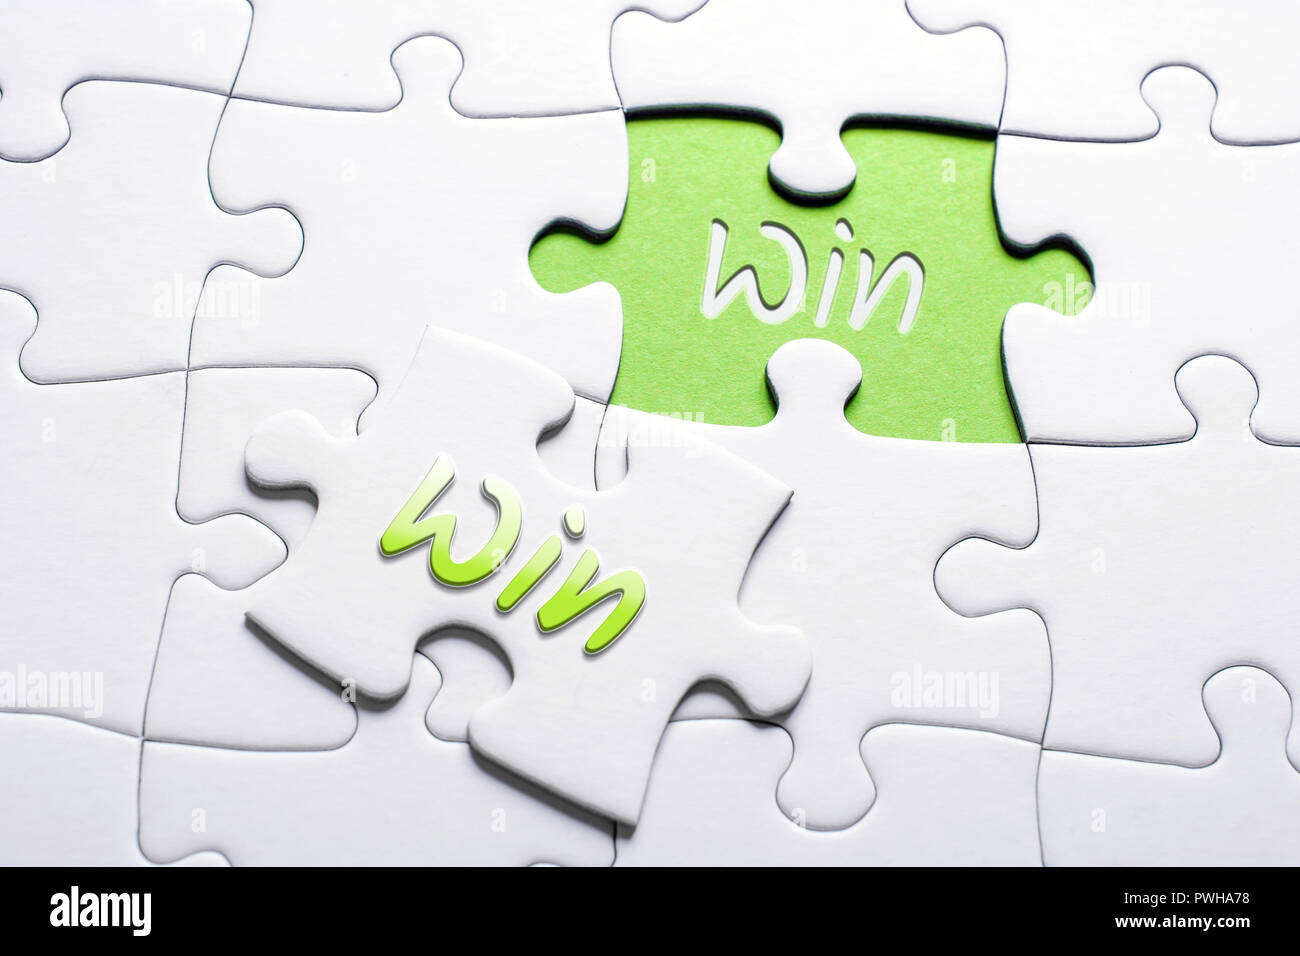 The Words Win And Win In Missing Piece Jigsaw Puzzle, Win-Win Situation Concept - Stock Image